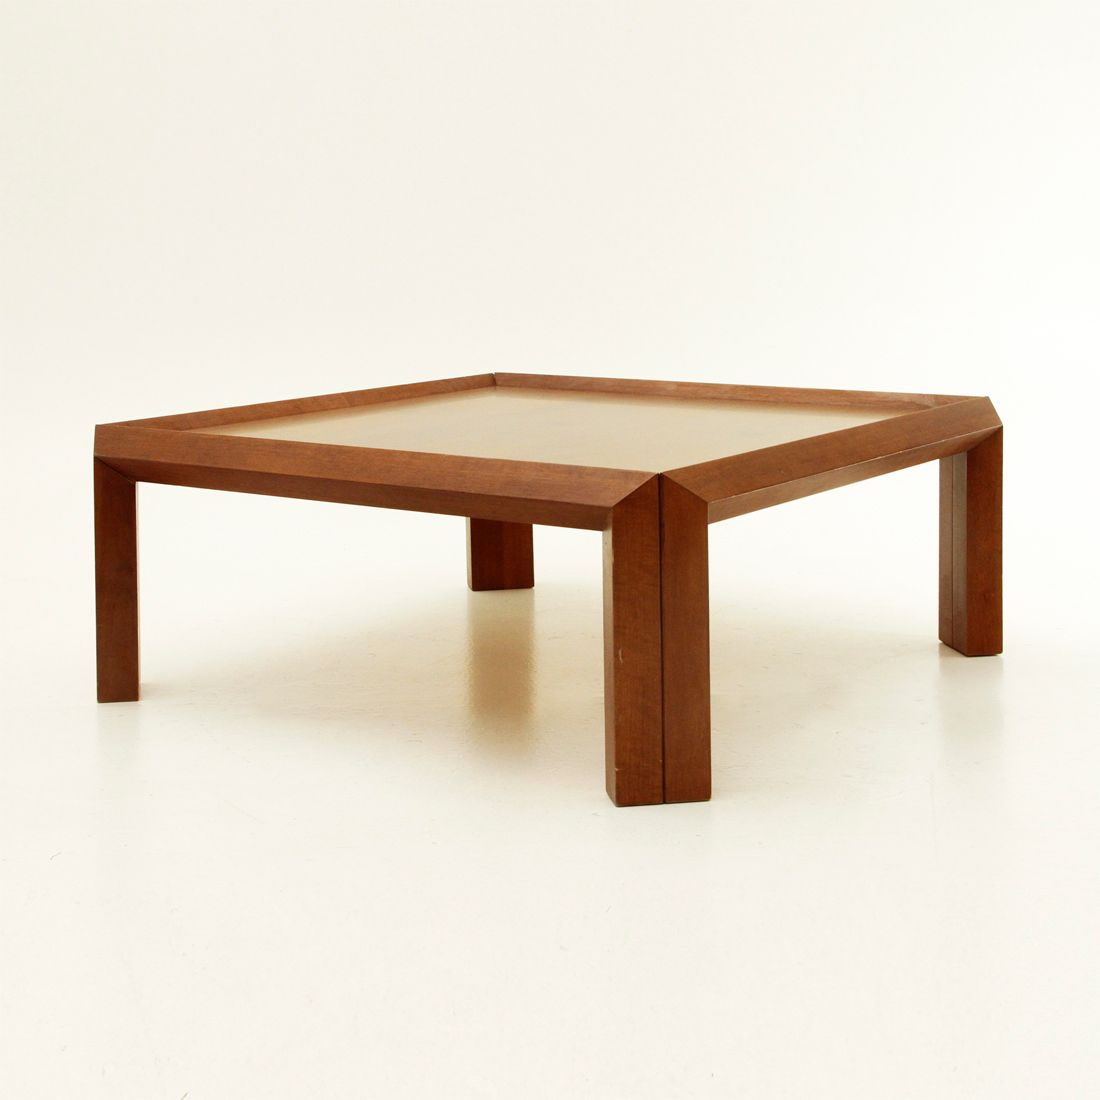 Italian Square Wooden Coffee Table 1980s For Sale At Pamono